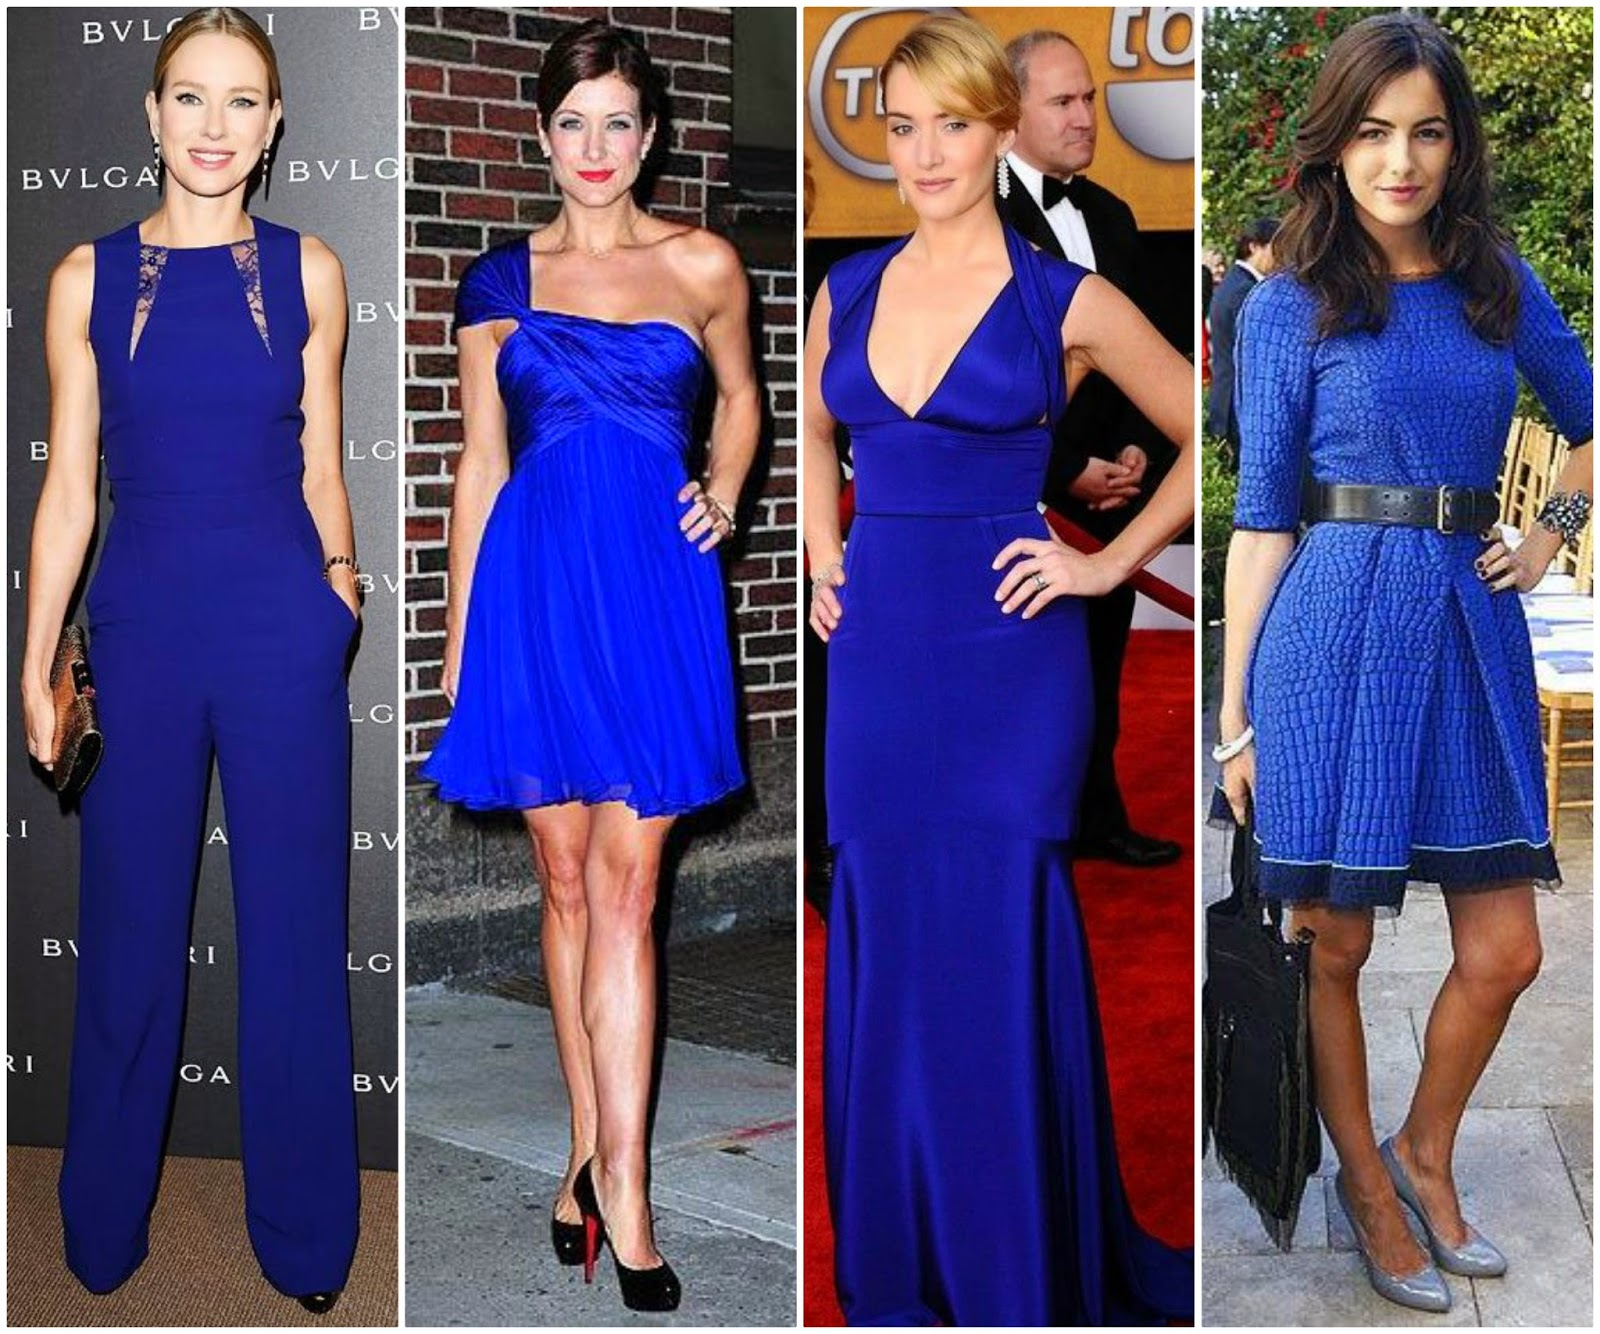 Libra Style, Blue Dress and Evening Gown